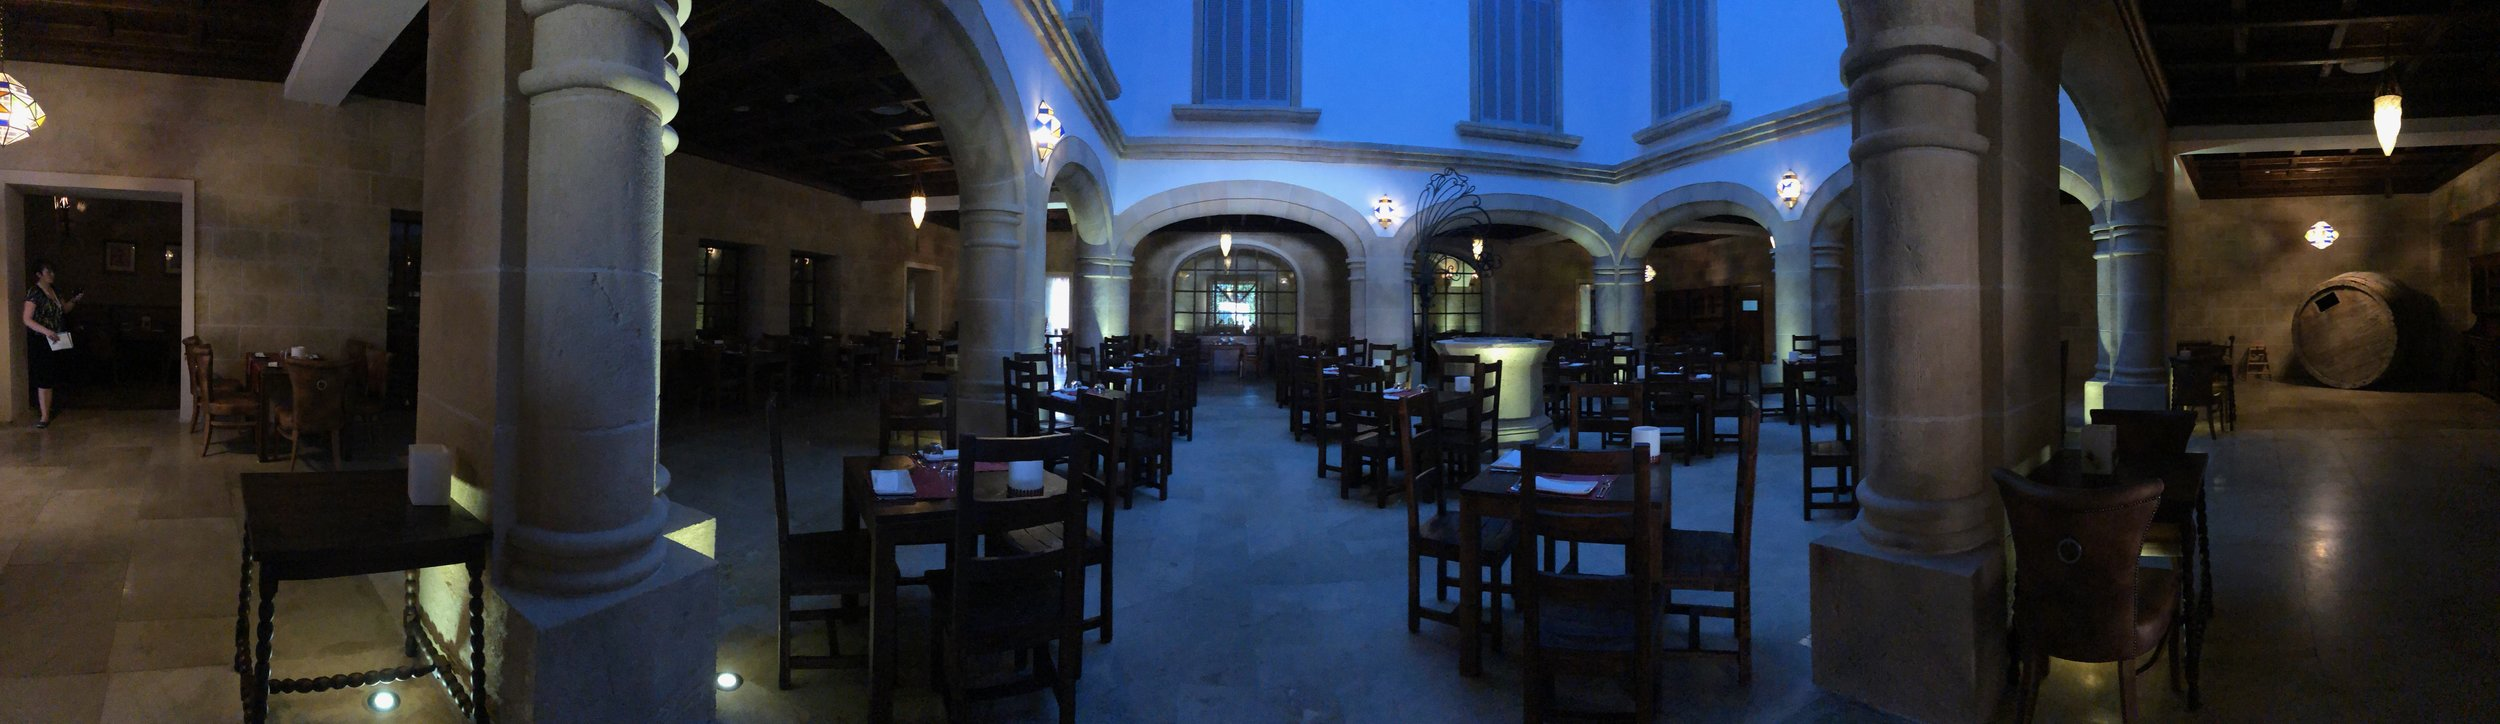 Dining options: steak house Don Jaume